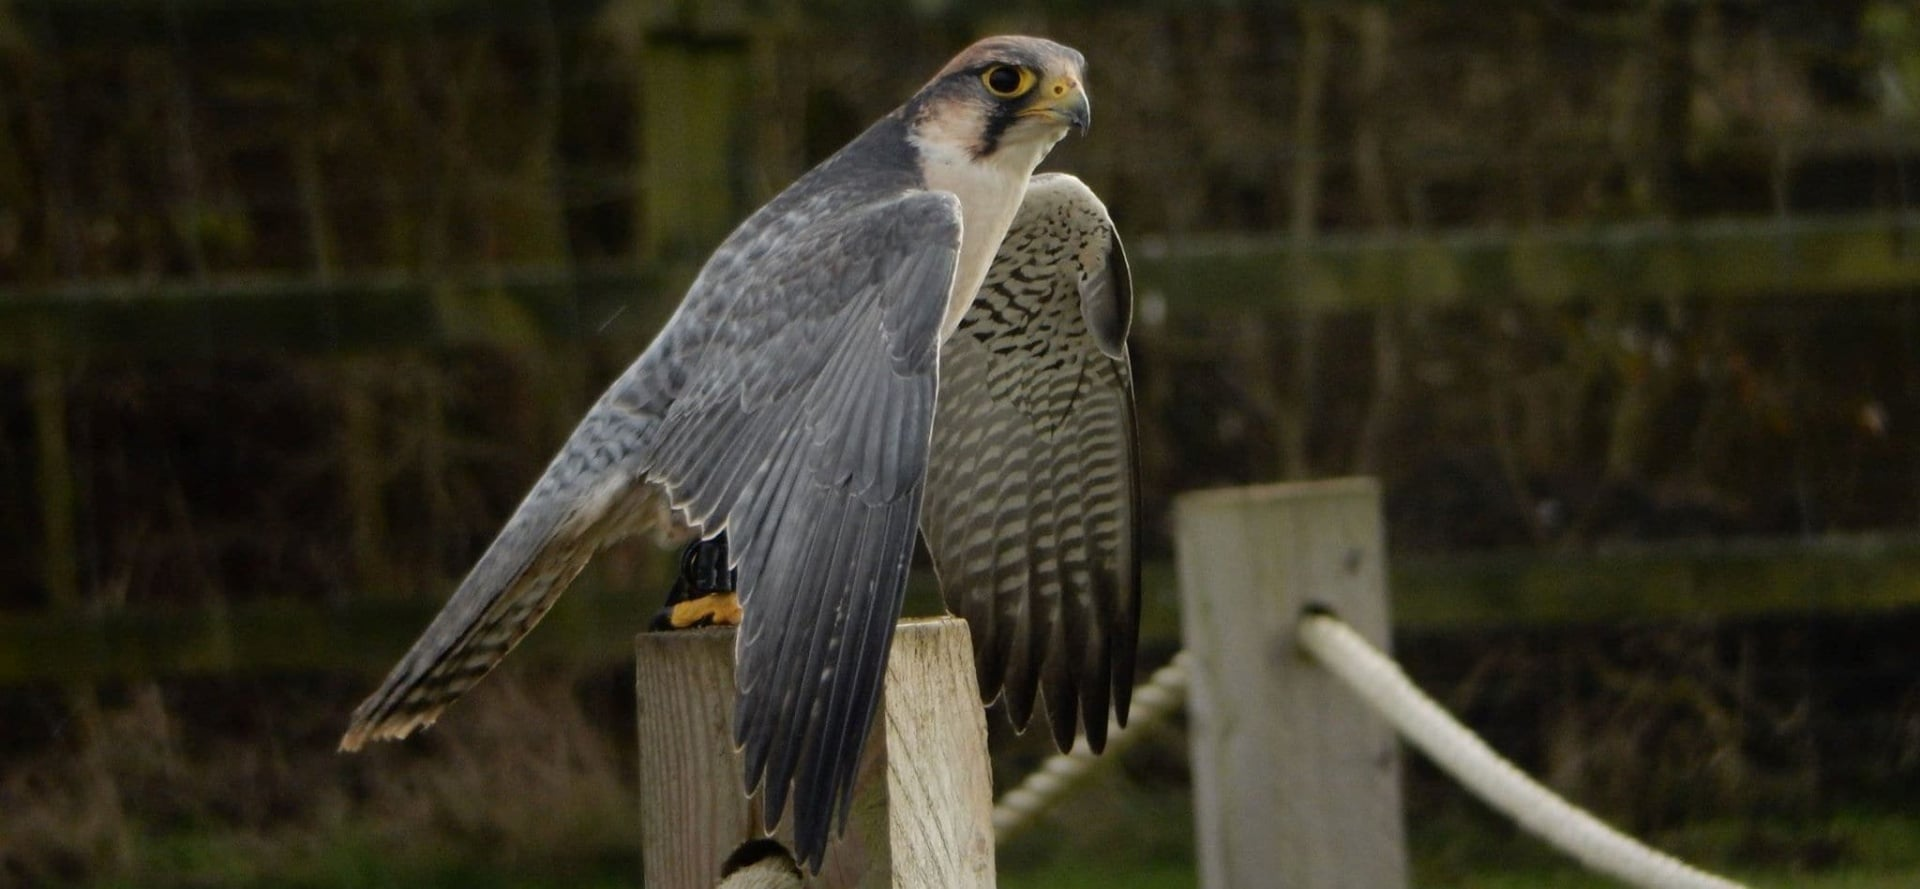 Bedfordshire Bird Of Prey Experience - Half Day-4